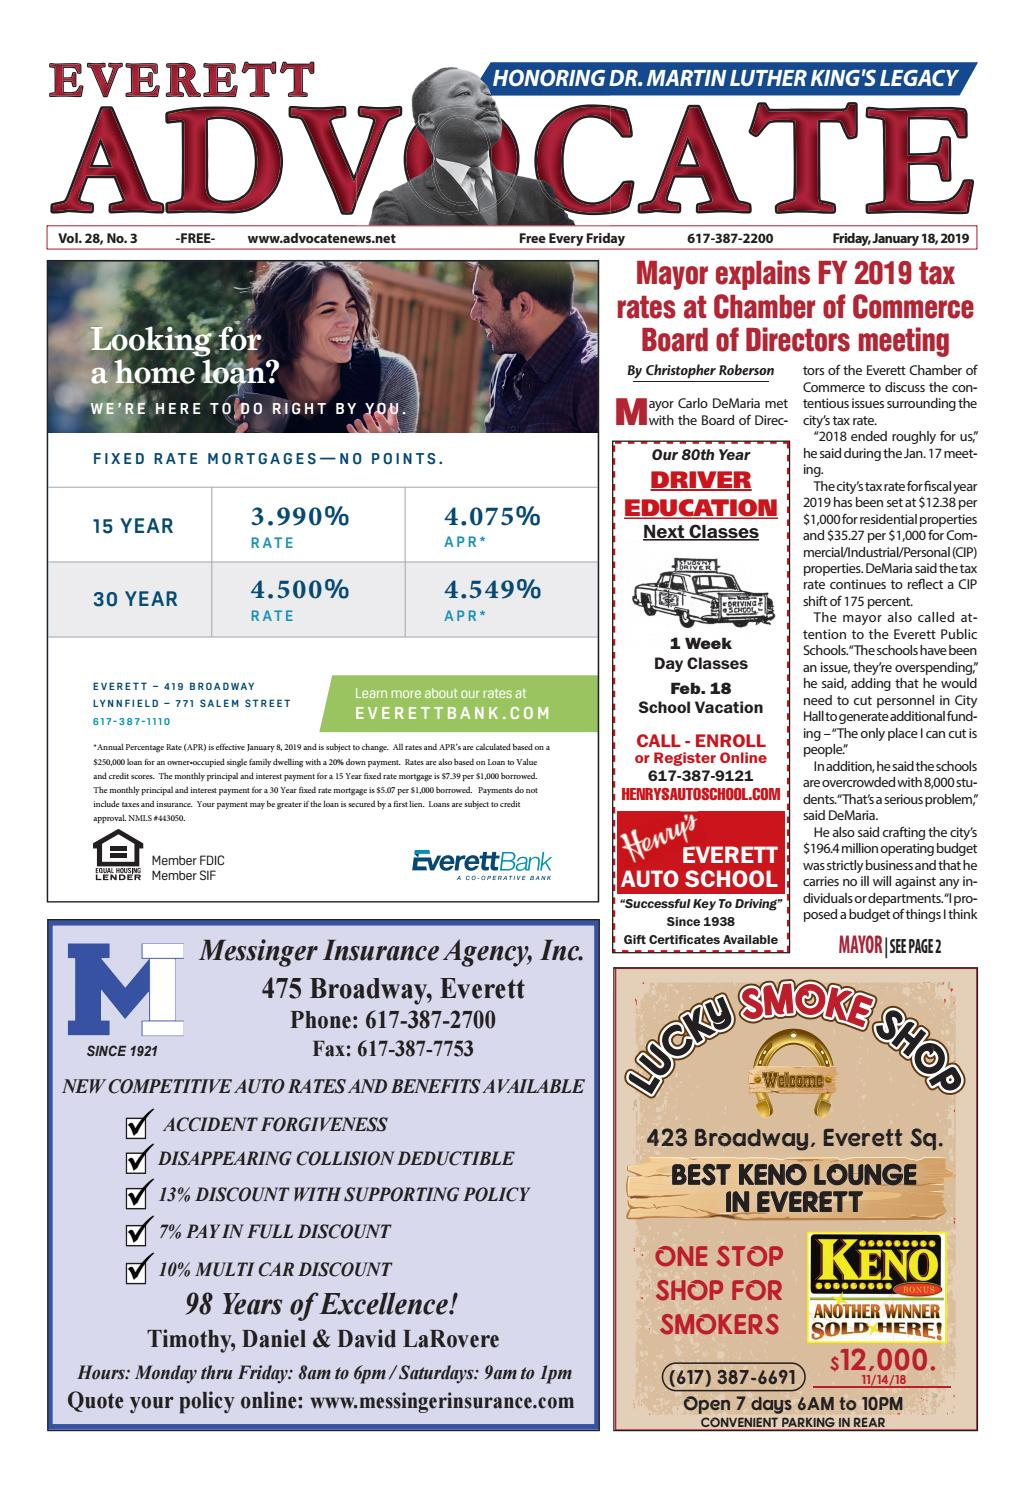 THE EVERETT ADVOCATE - Friday, January 18, 2019 by Mike